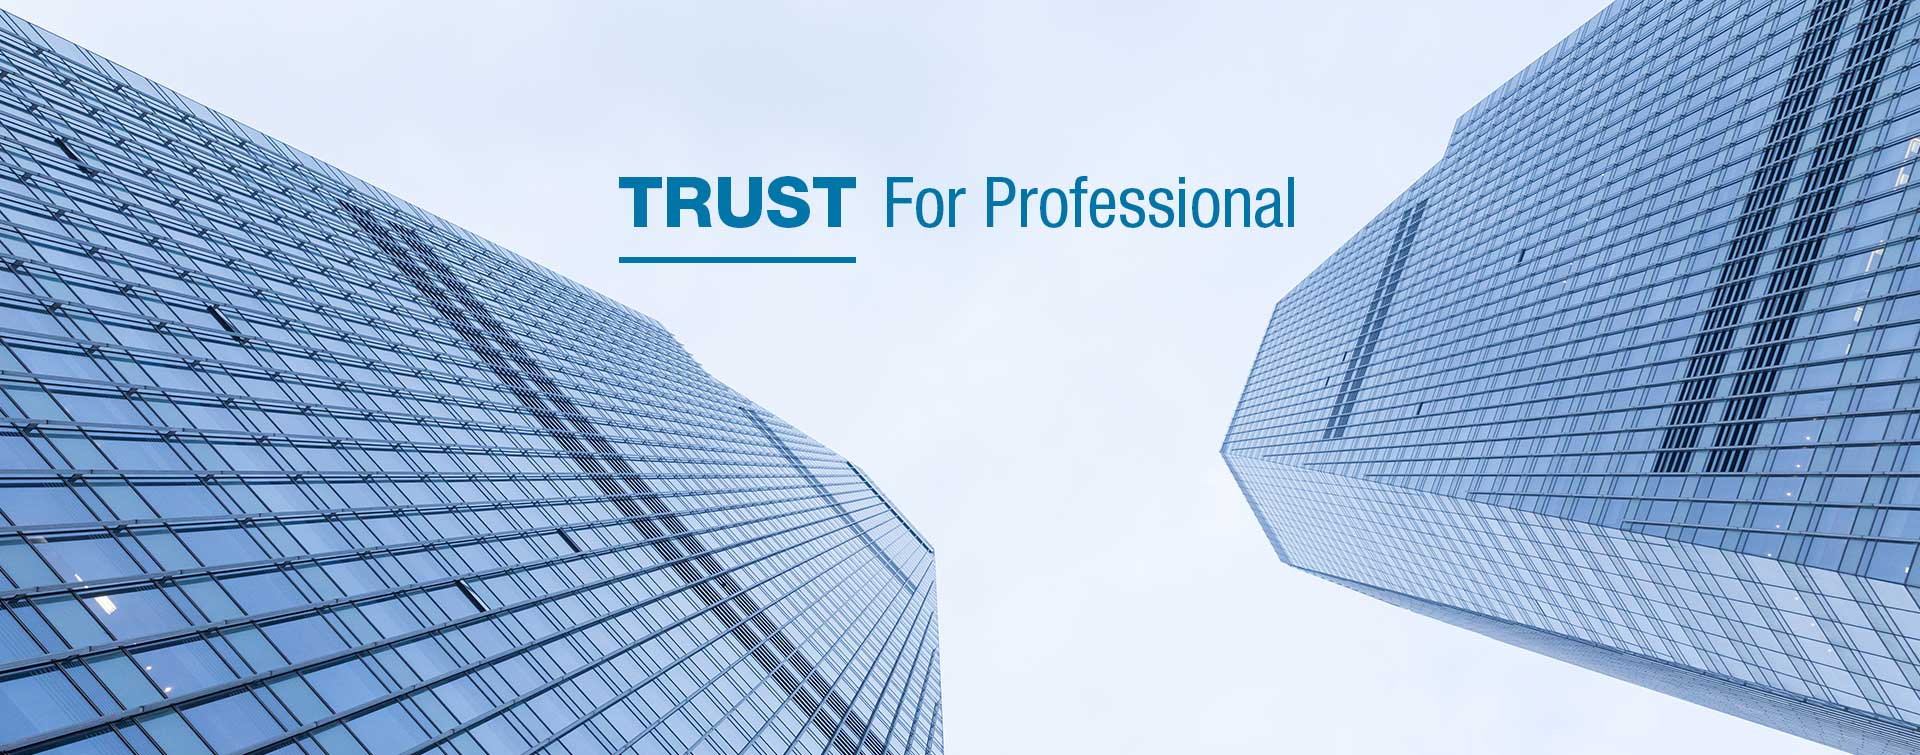 TRUST For Professional